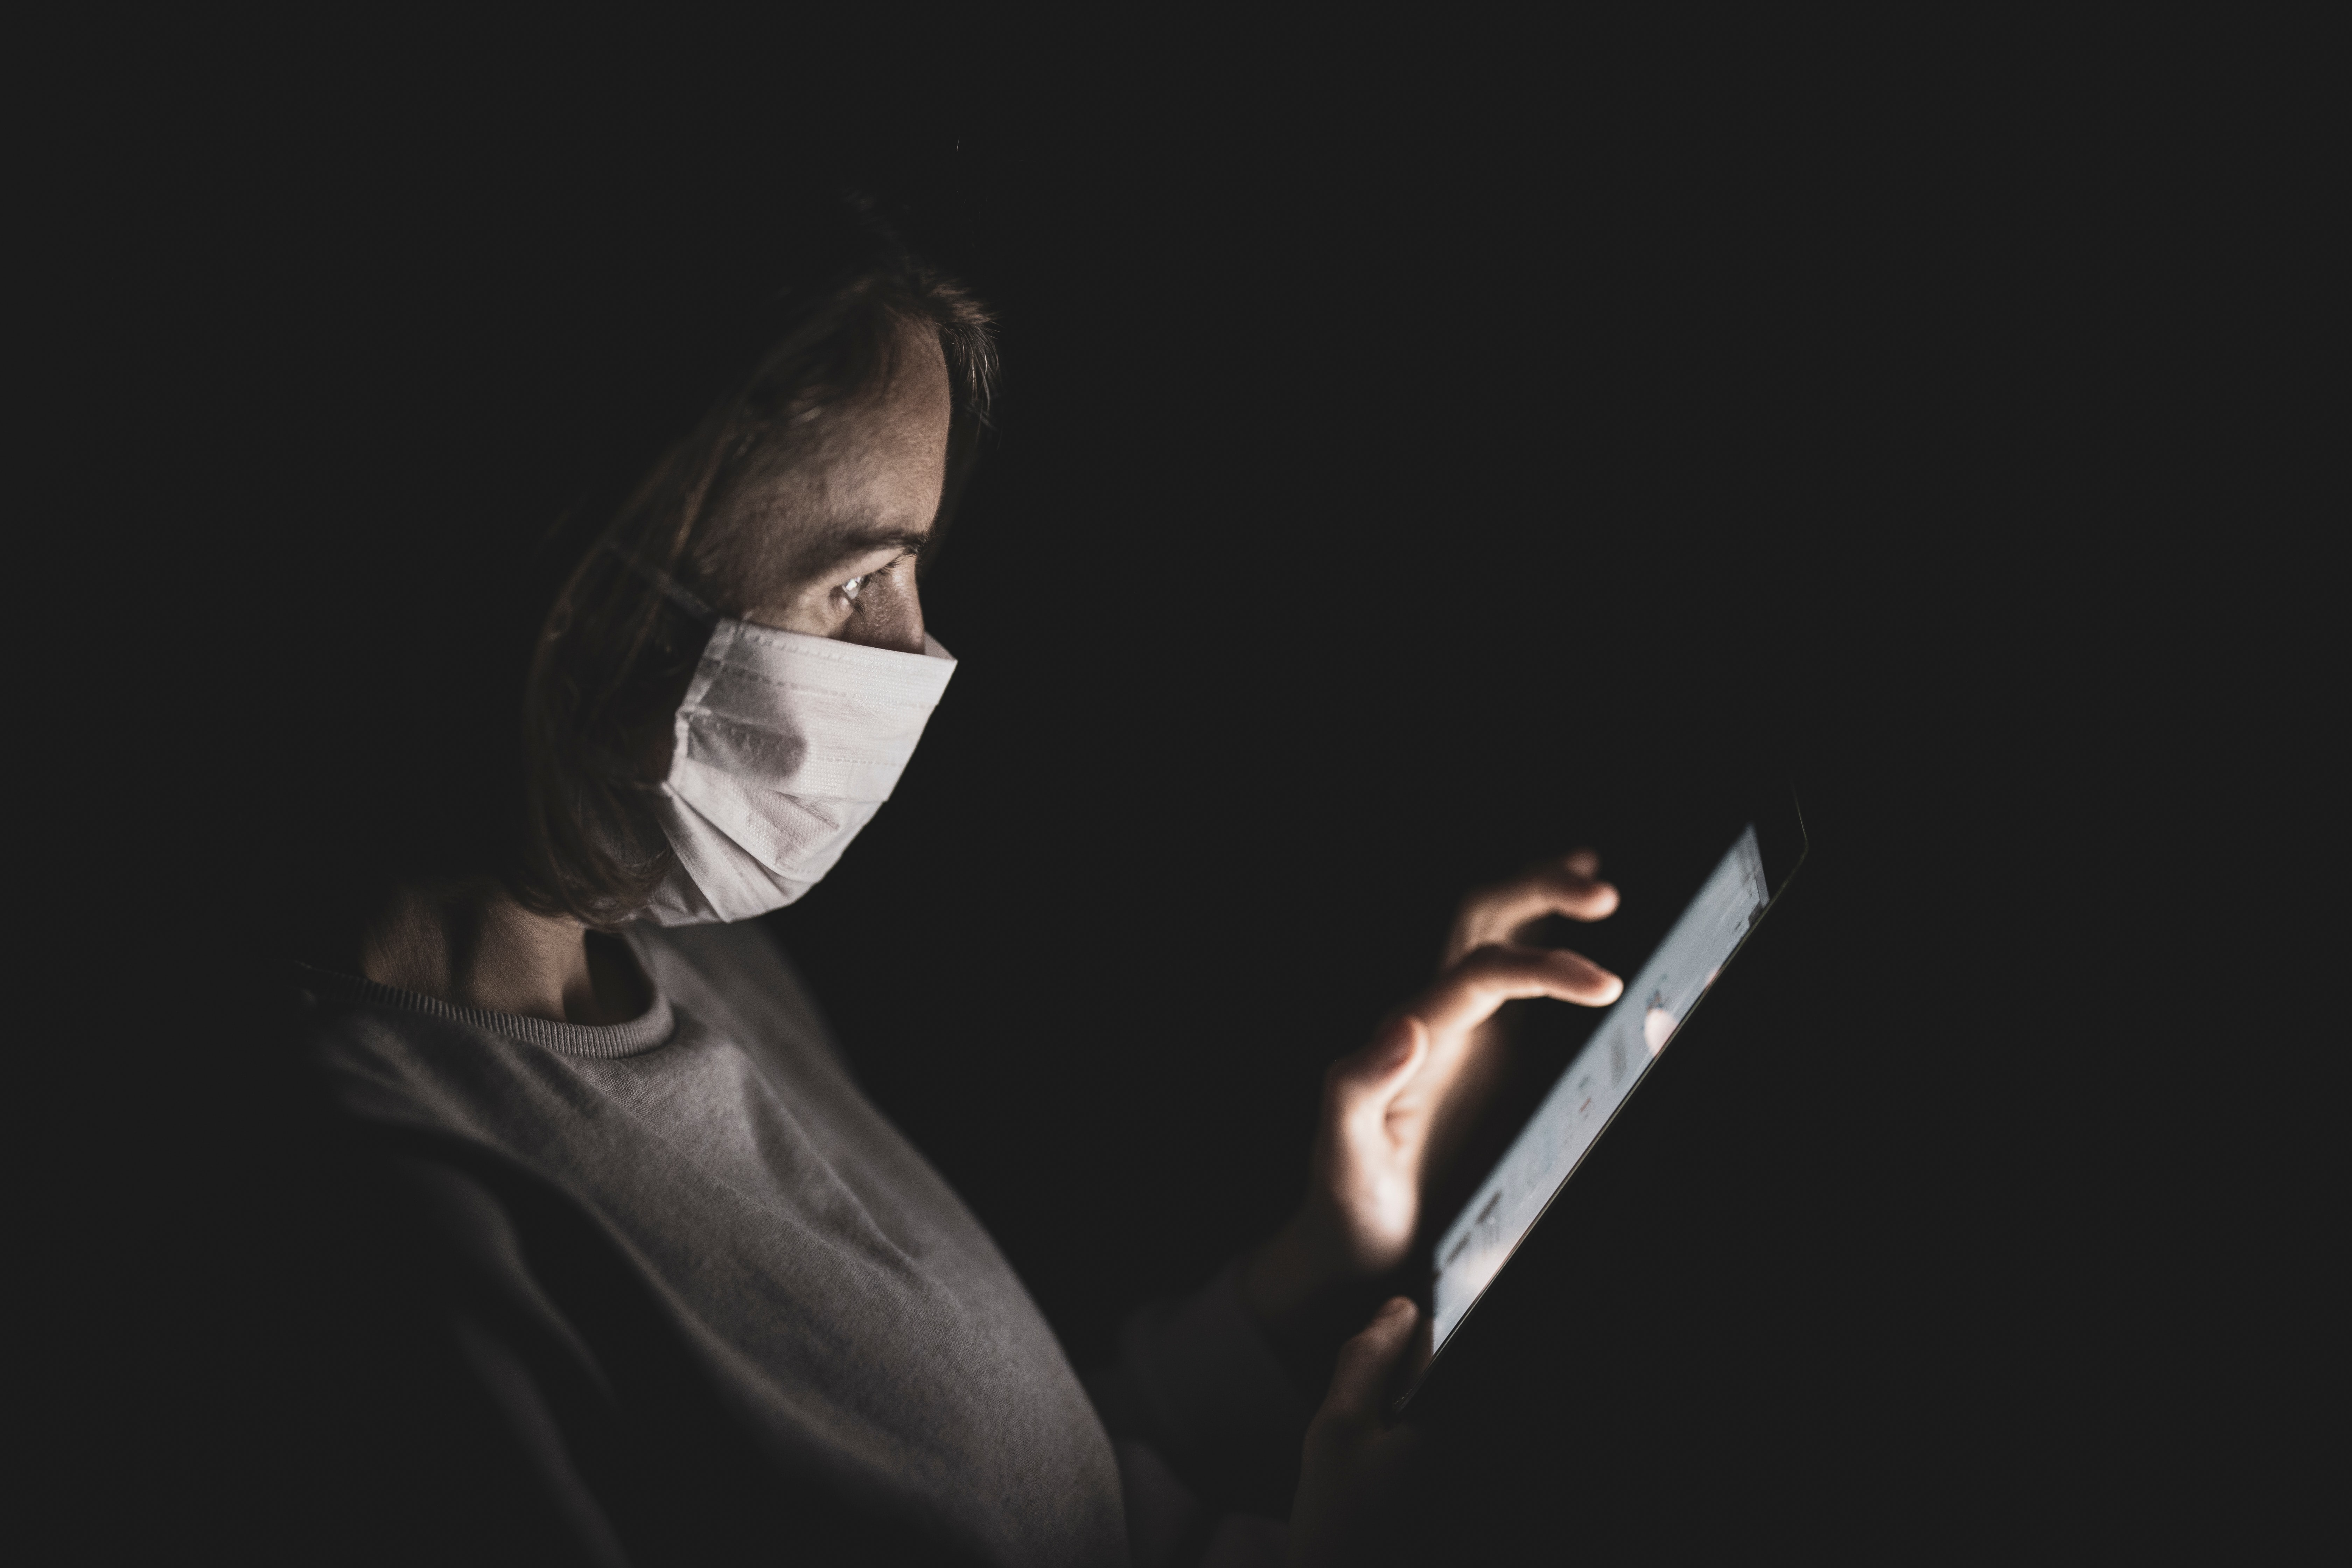 masked person looking at screen